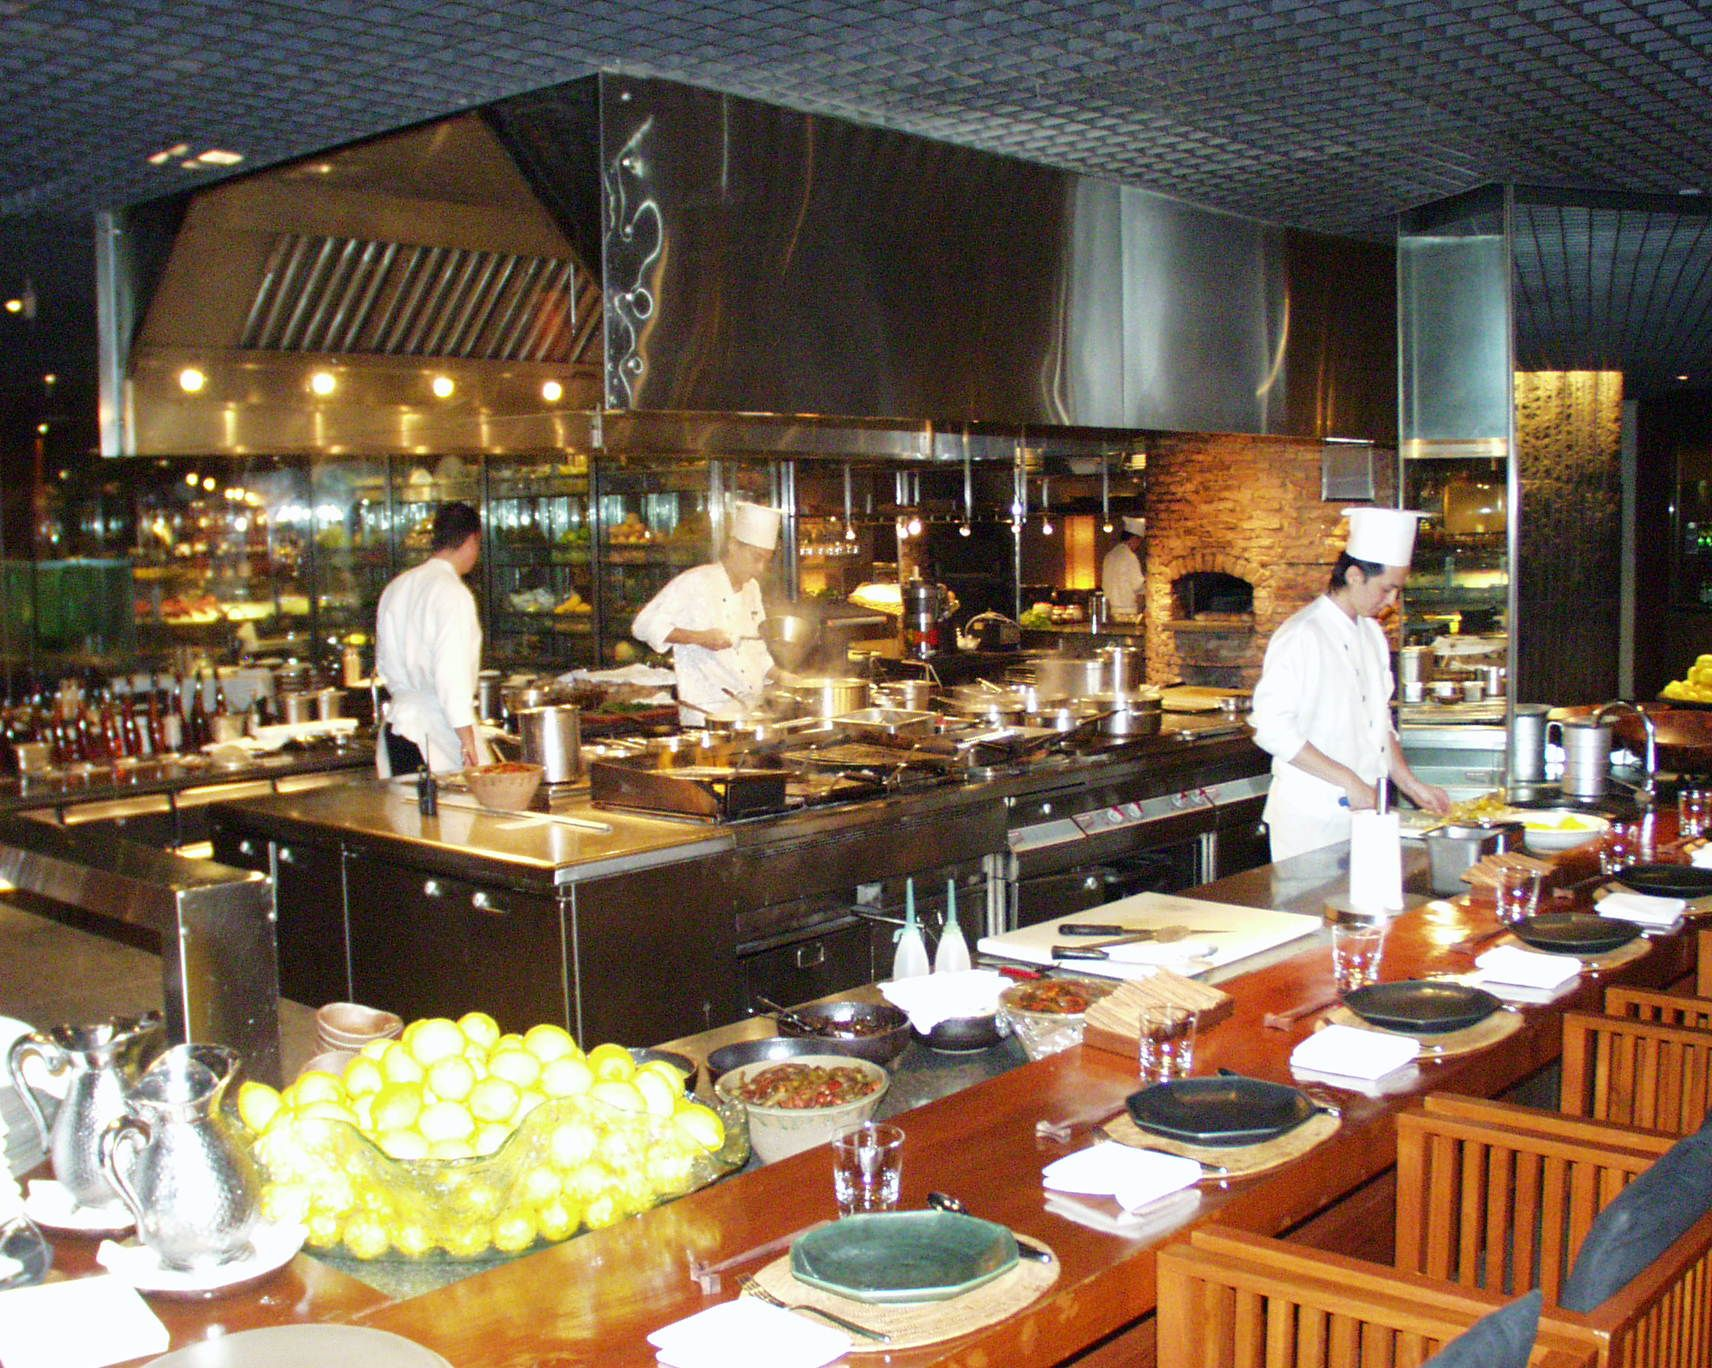 open restaurant kitchen designs commercial open kitchen open kitchen w bar at prep area - Restaurant Open Kitchen Design